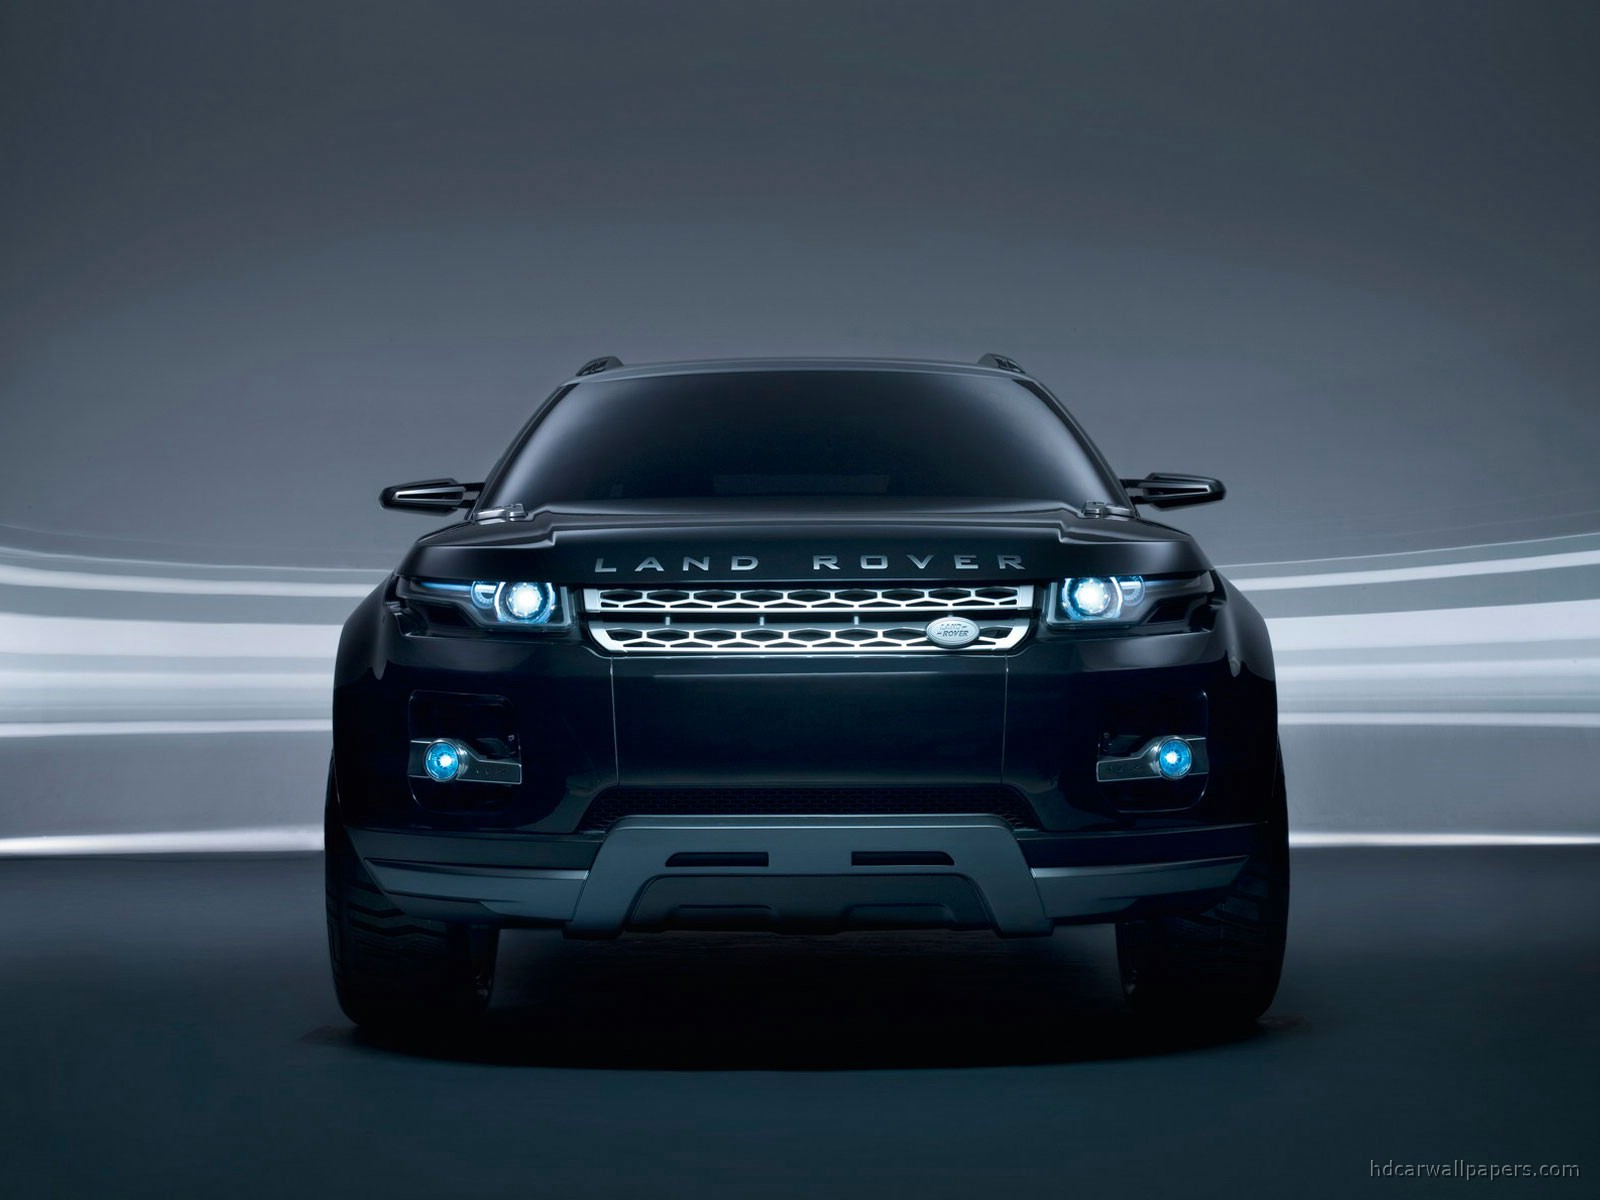 Land Rover LRX Concept Black 6 151.55 Kb